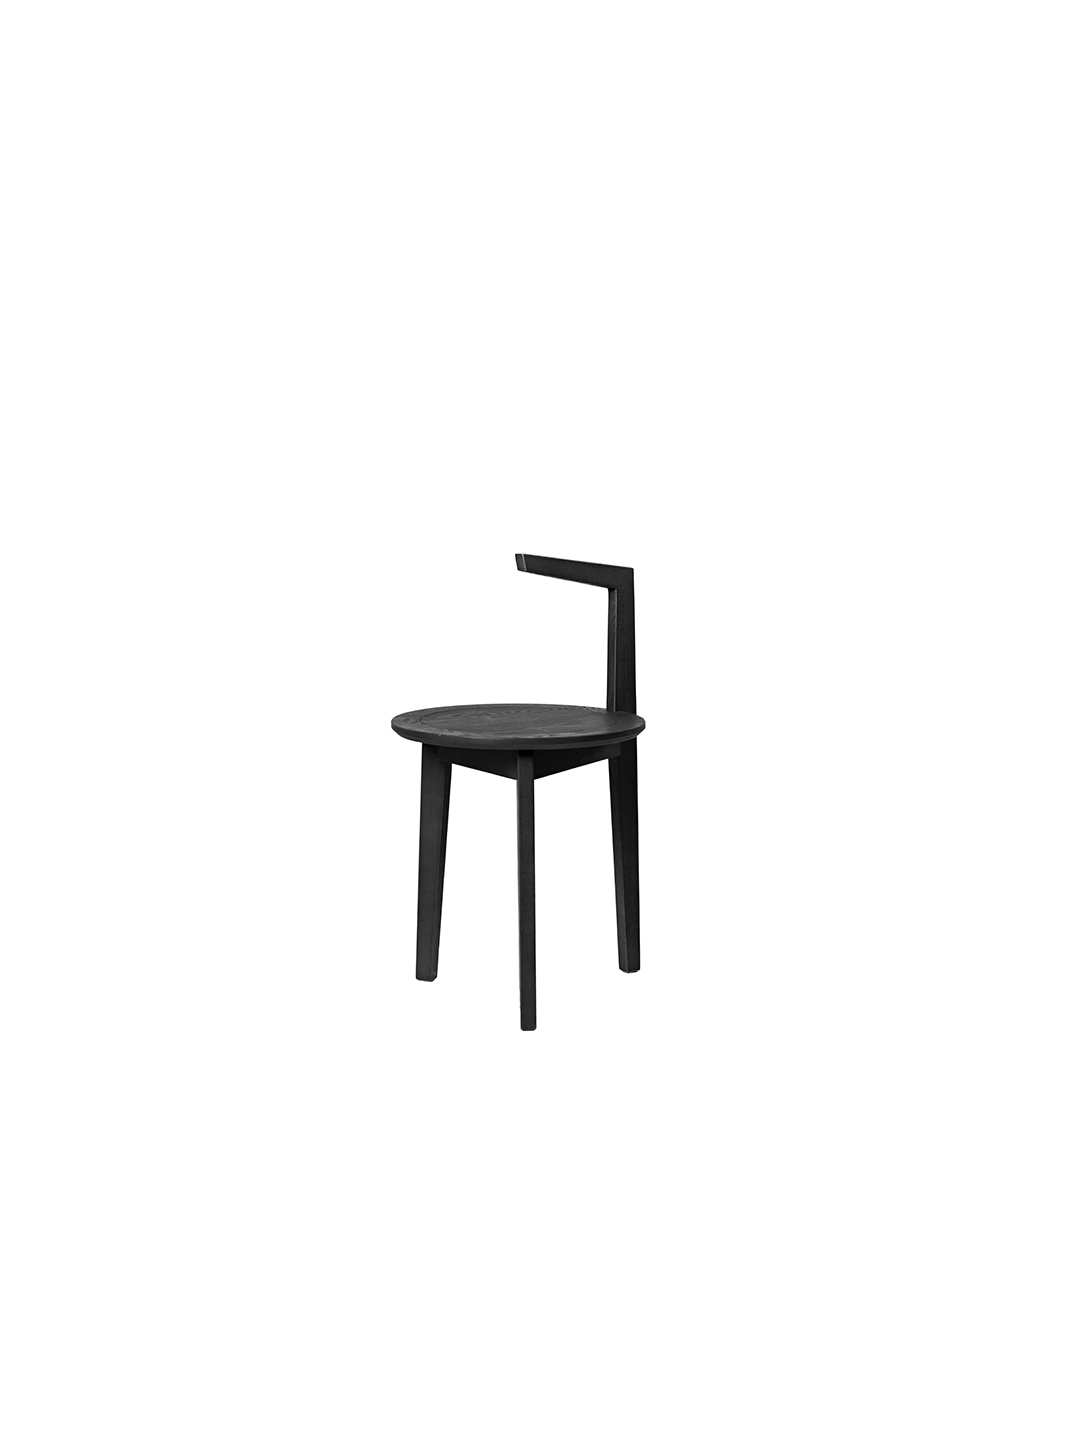 Hook table d 39 appoint mariette clermont - Table d appoint fly ...